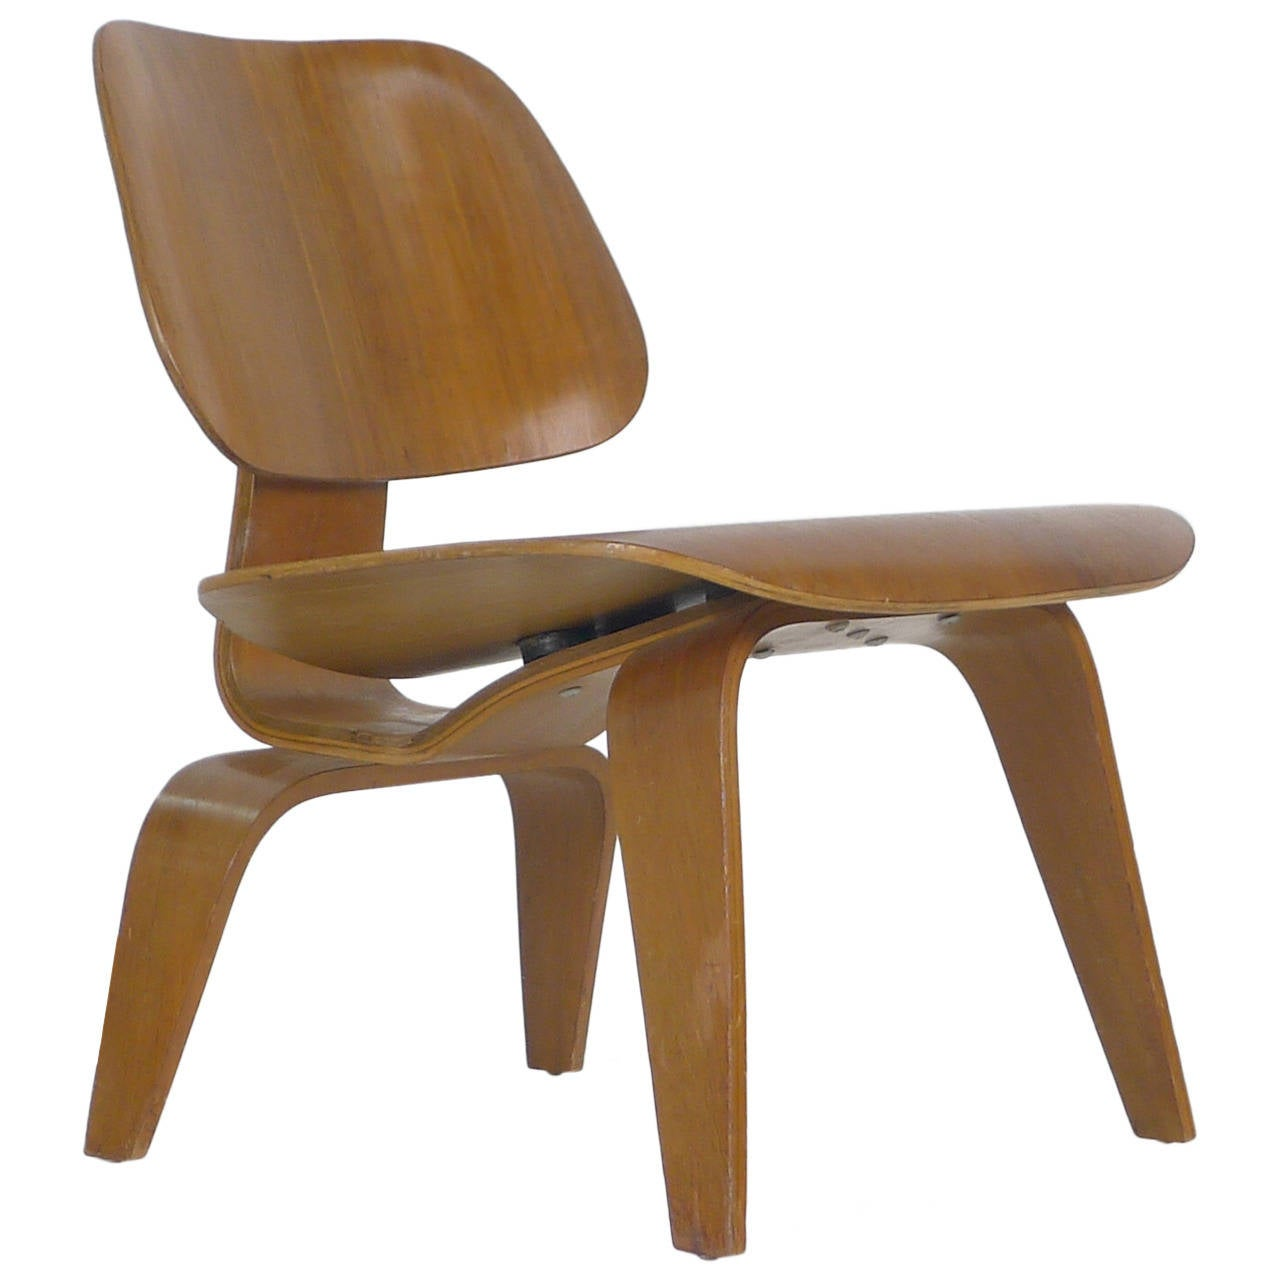 charles eames lounge chair wood lcw at 1stdibs. Black Bedroom Furniture Sets. Home Design Ideas